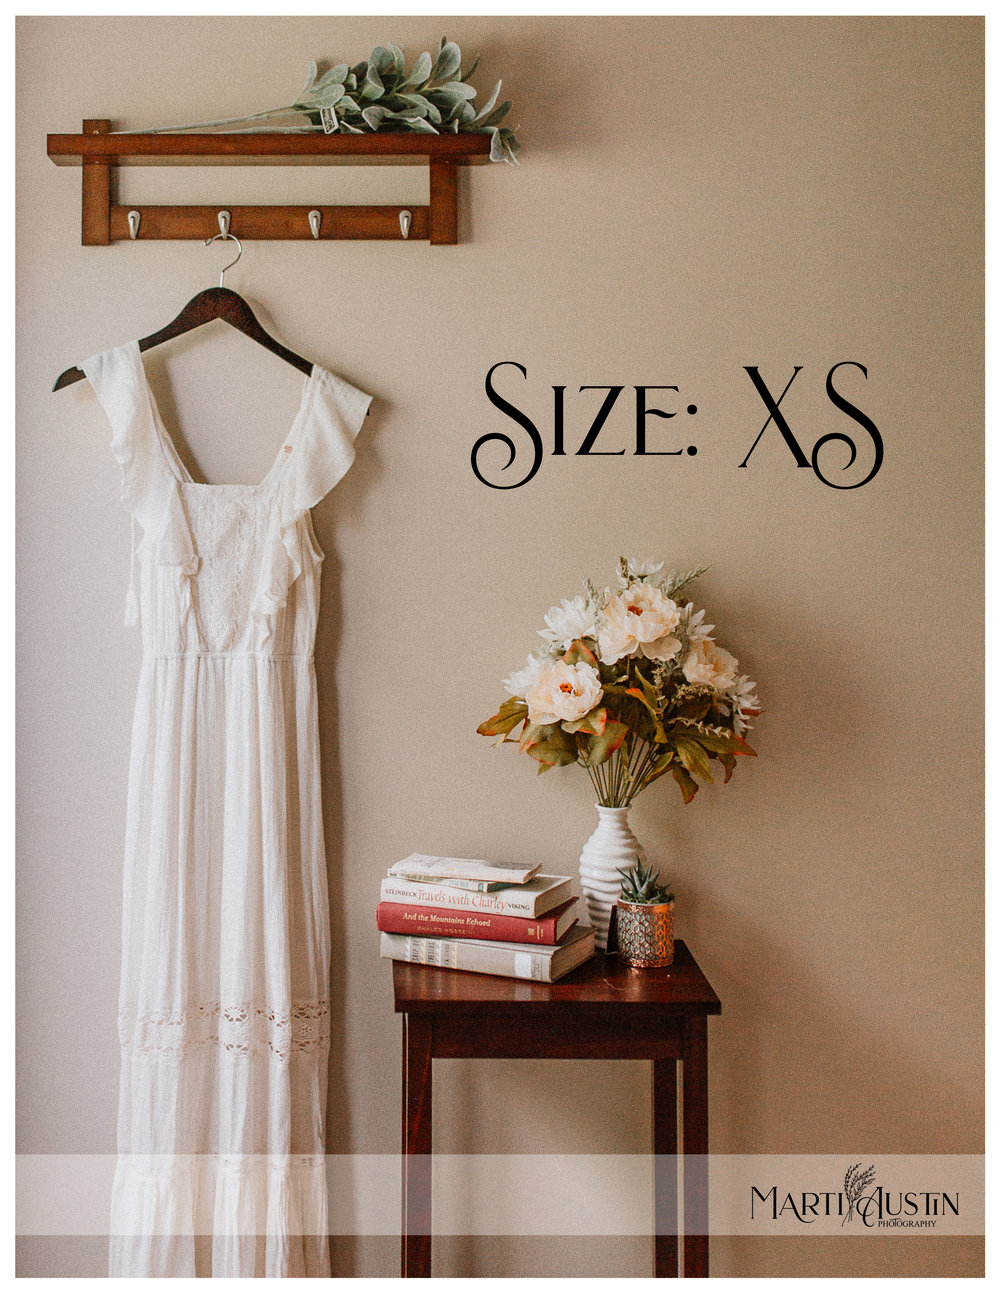 long off-white dress hanging on the wall next to a table with books and flowers